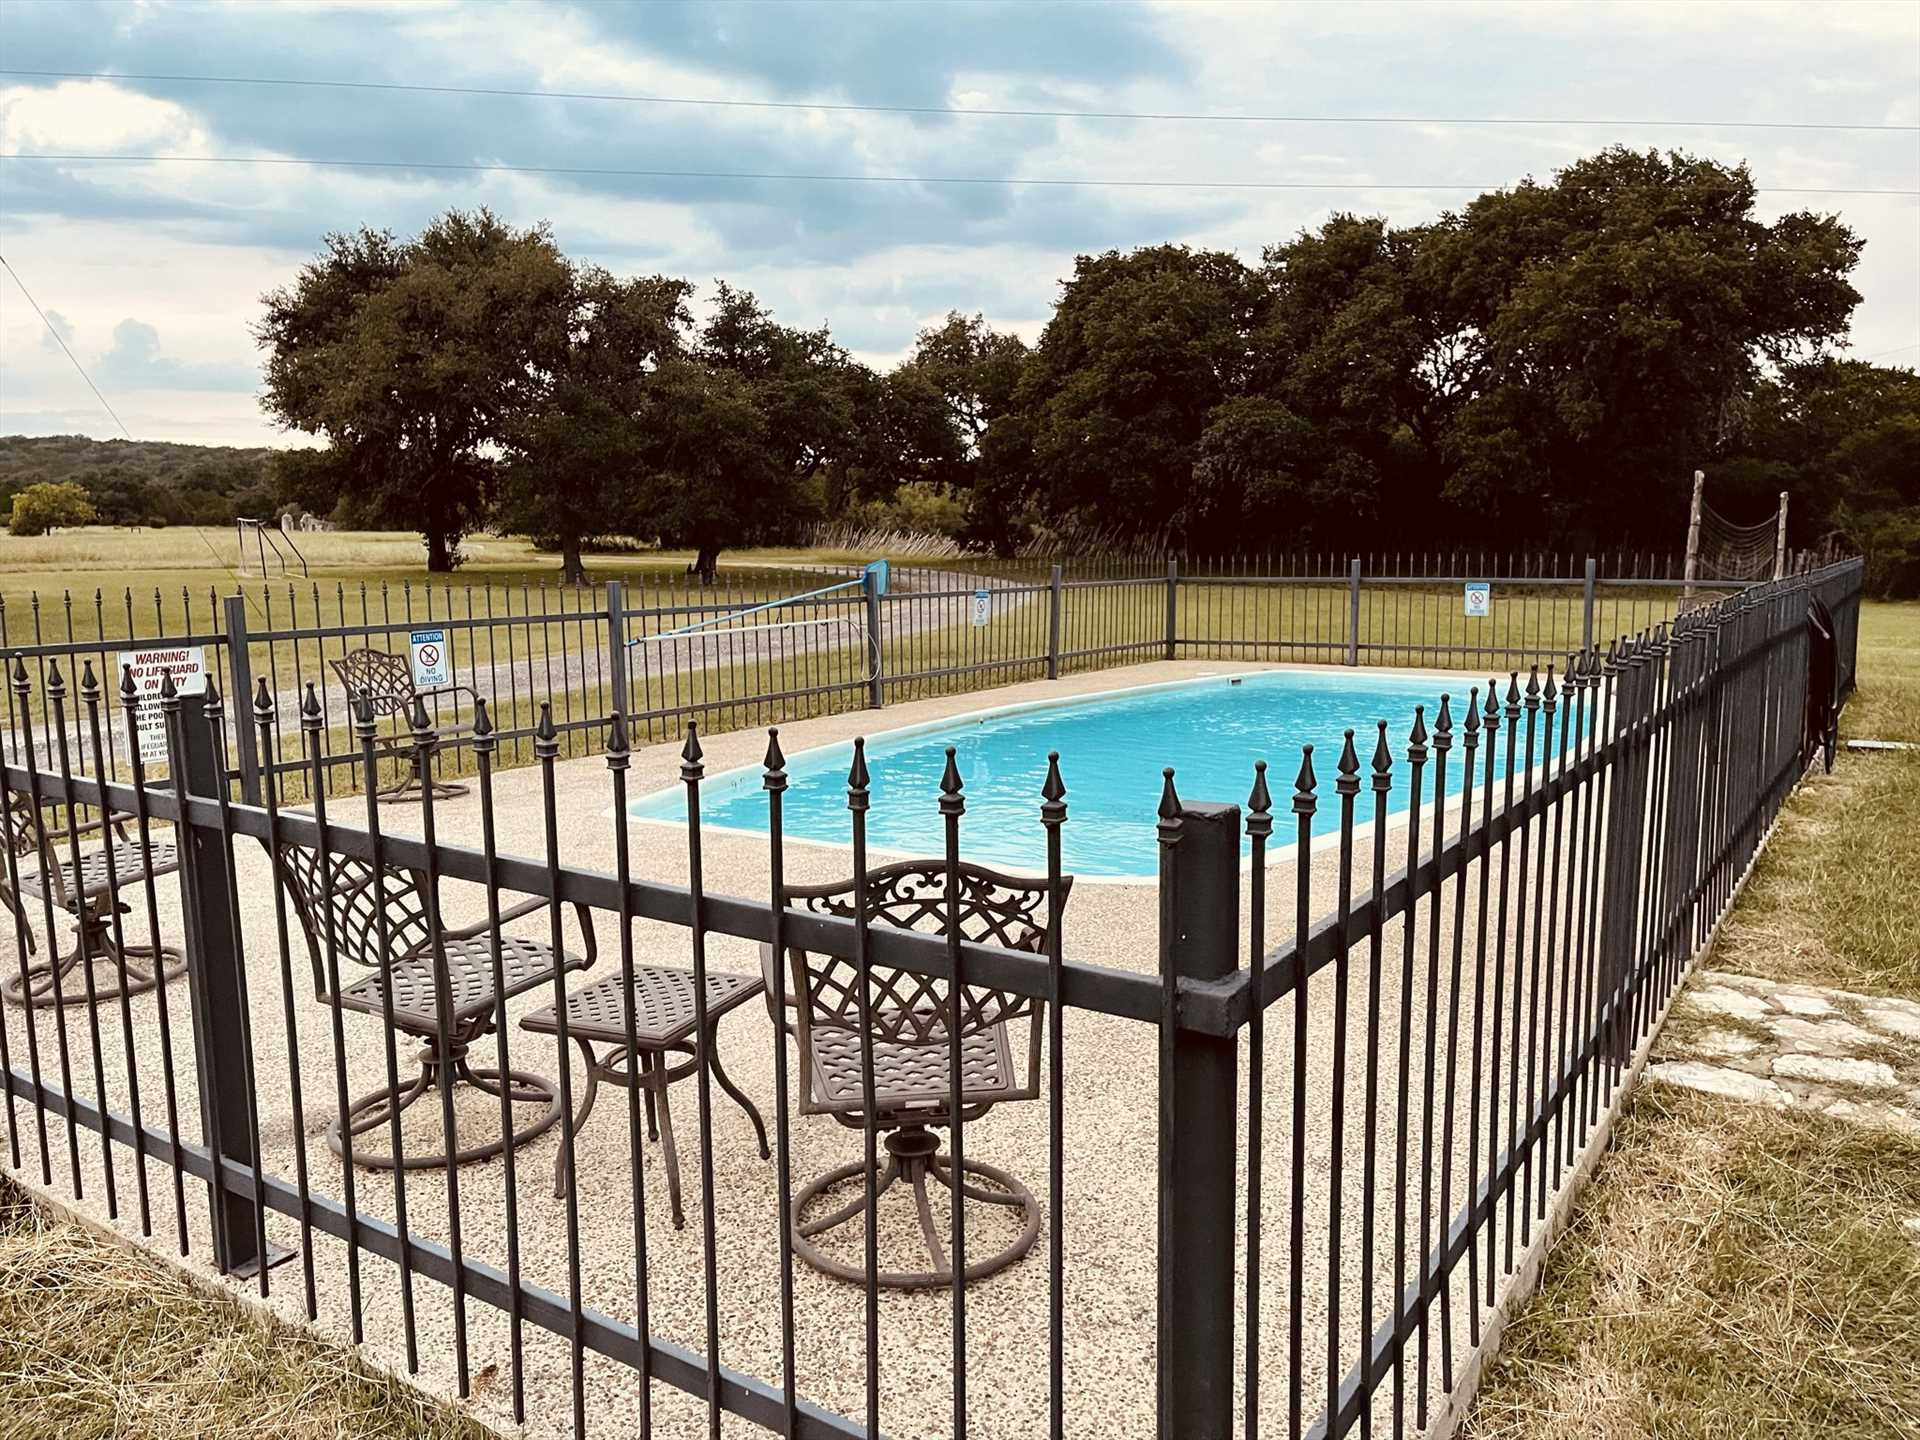 Texas summers don't stand a chance against the cool and crystal-clear waters of the shared swimming pool here!